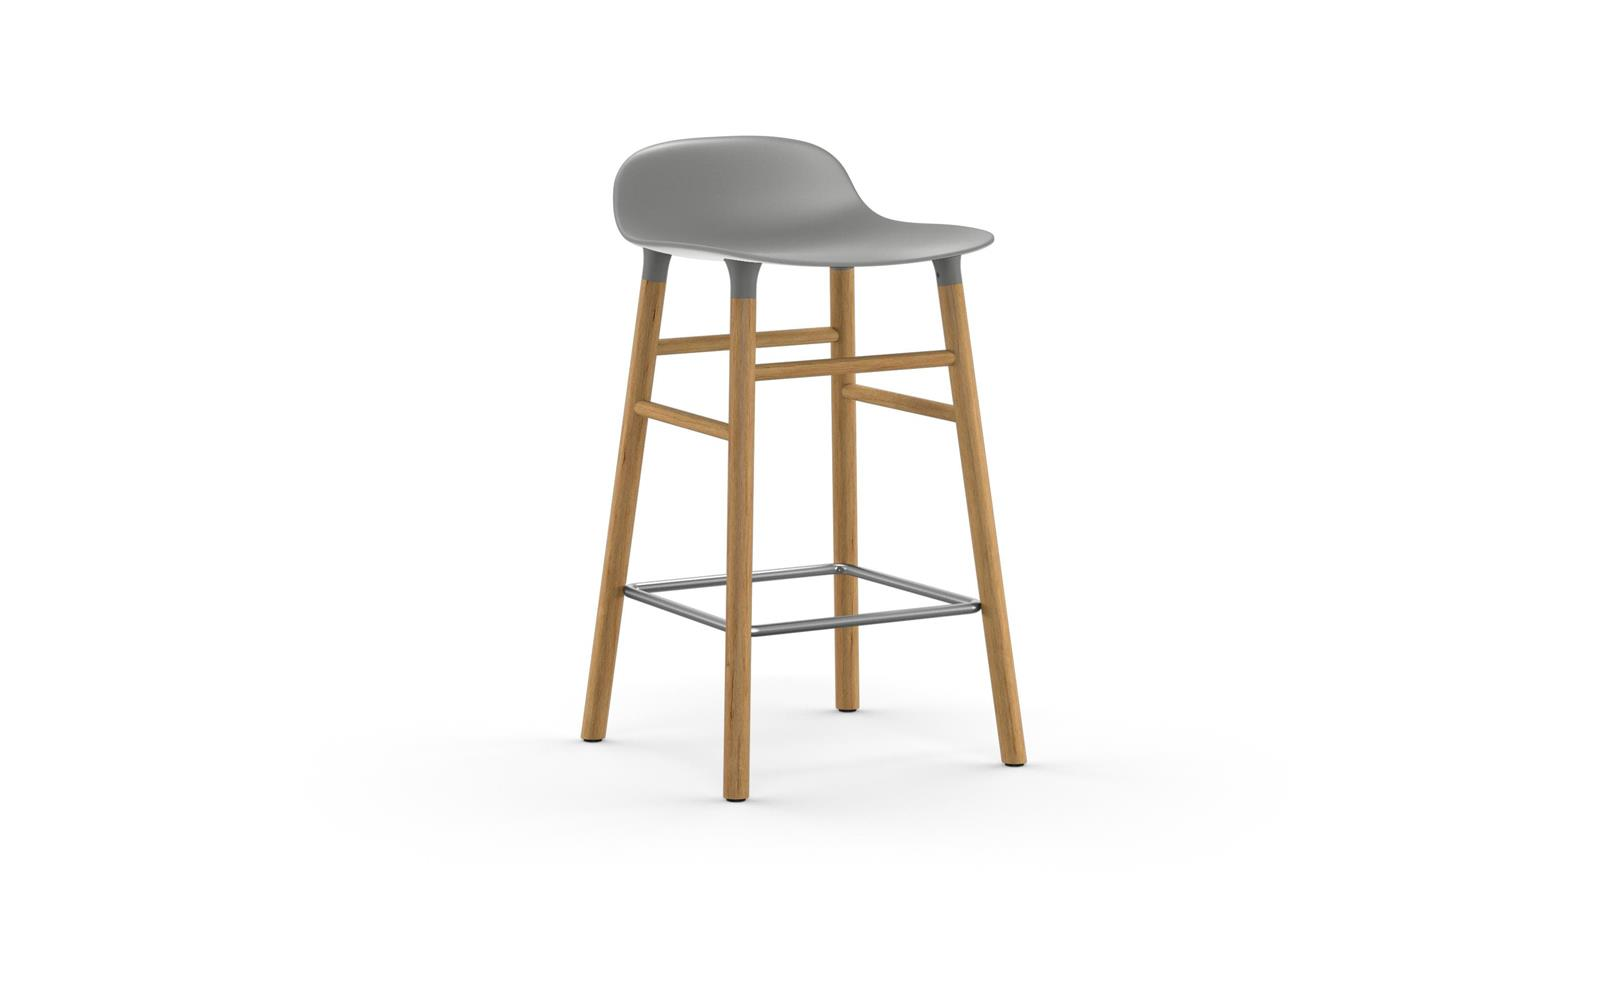 9f214a7ed1b7 Form Chair | Molded plastic shell chair with oak legs